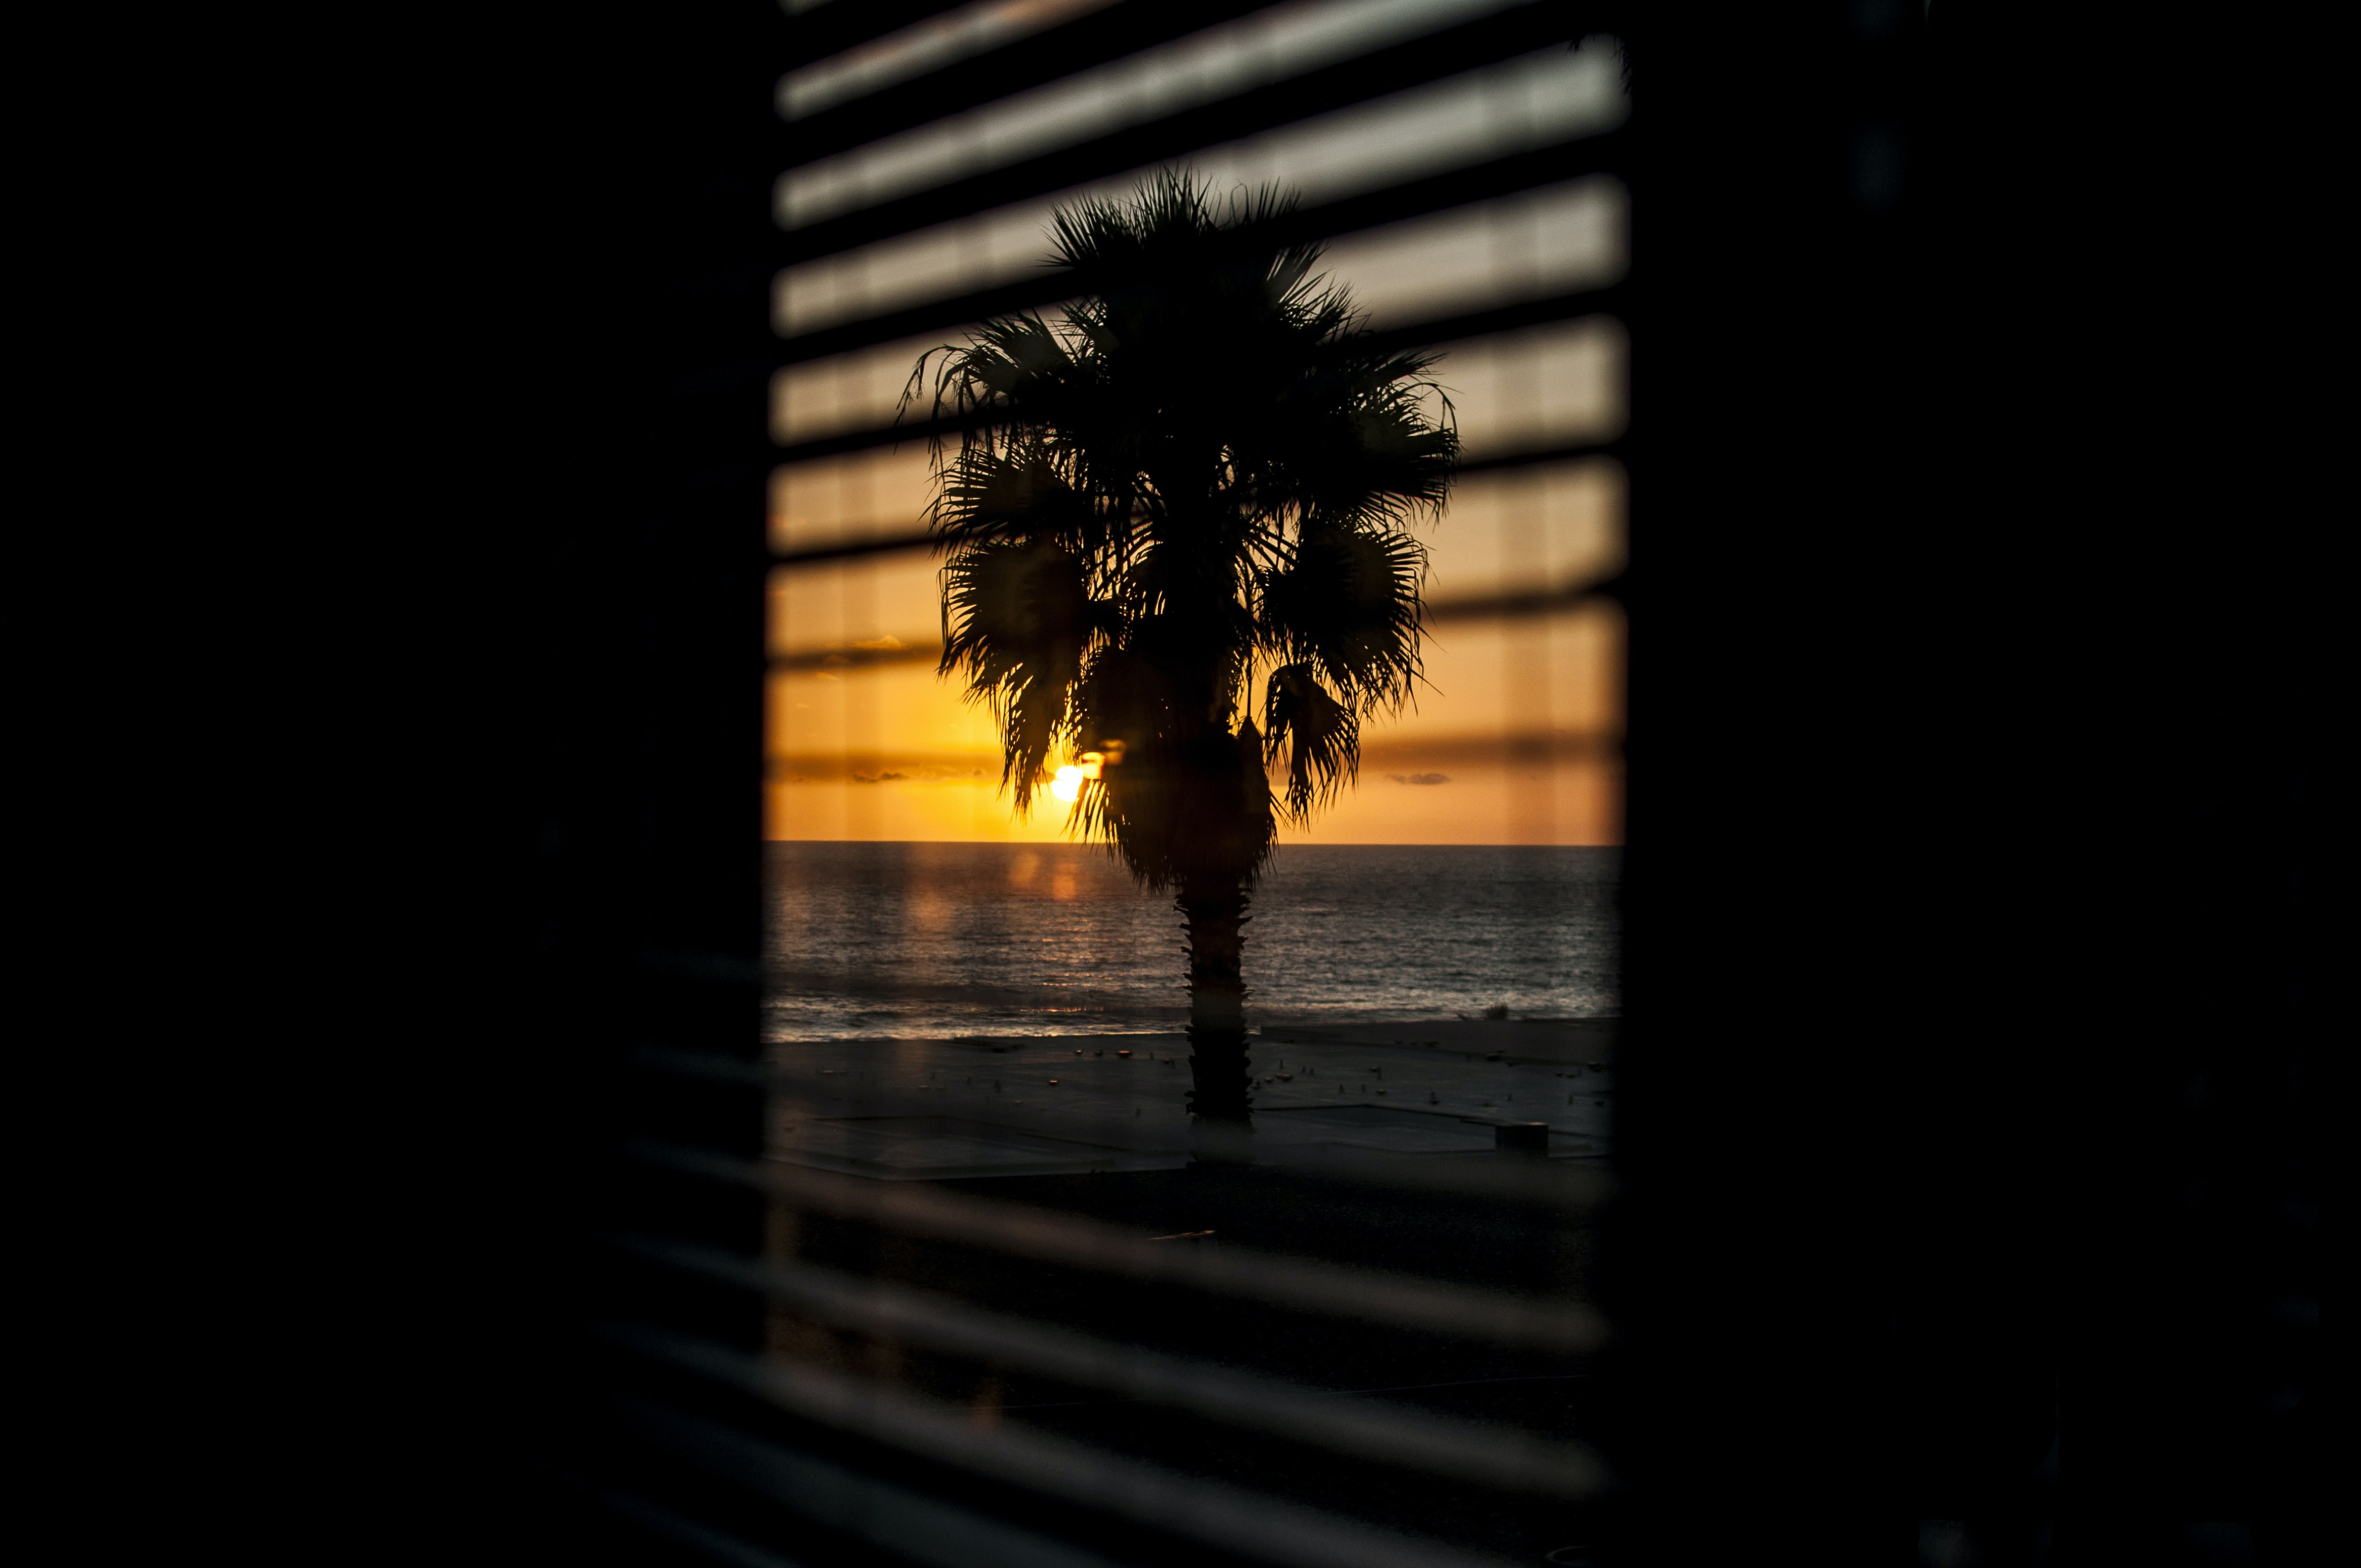 A palm tree, the ocean, and the sun above the horizon, seen through window blinds